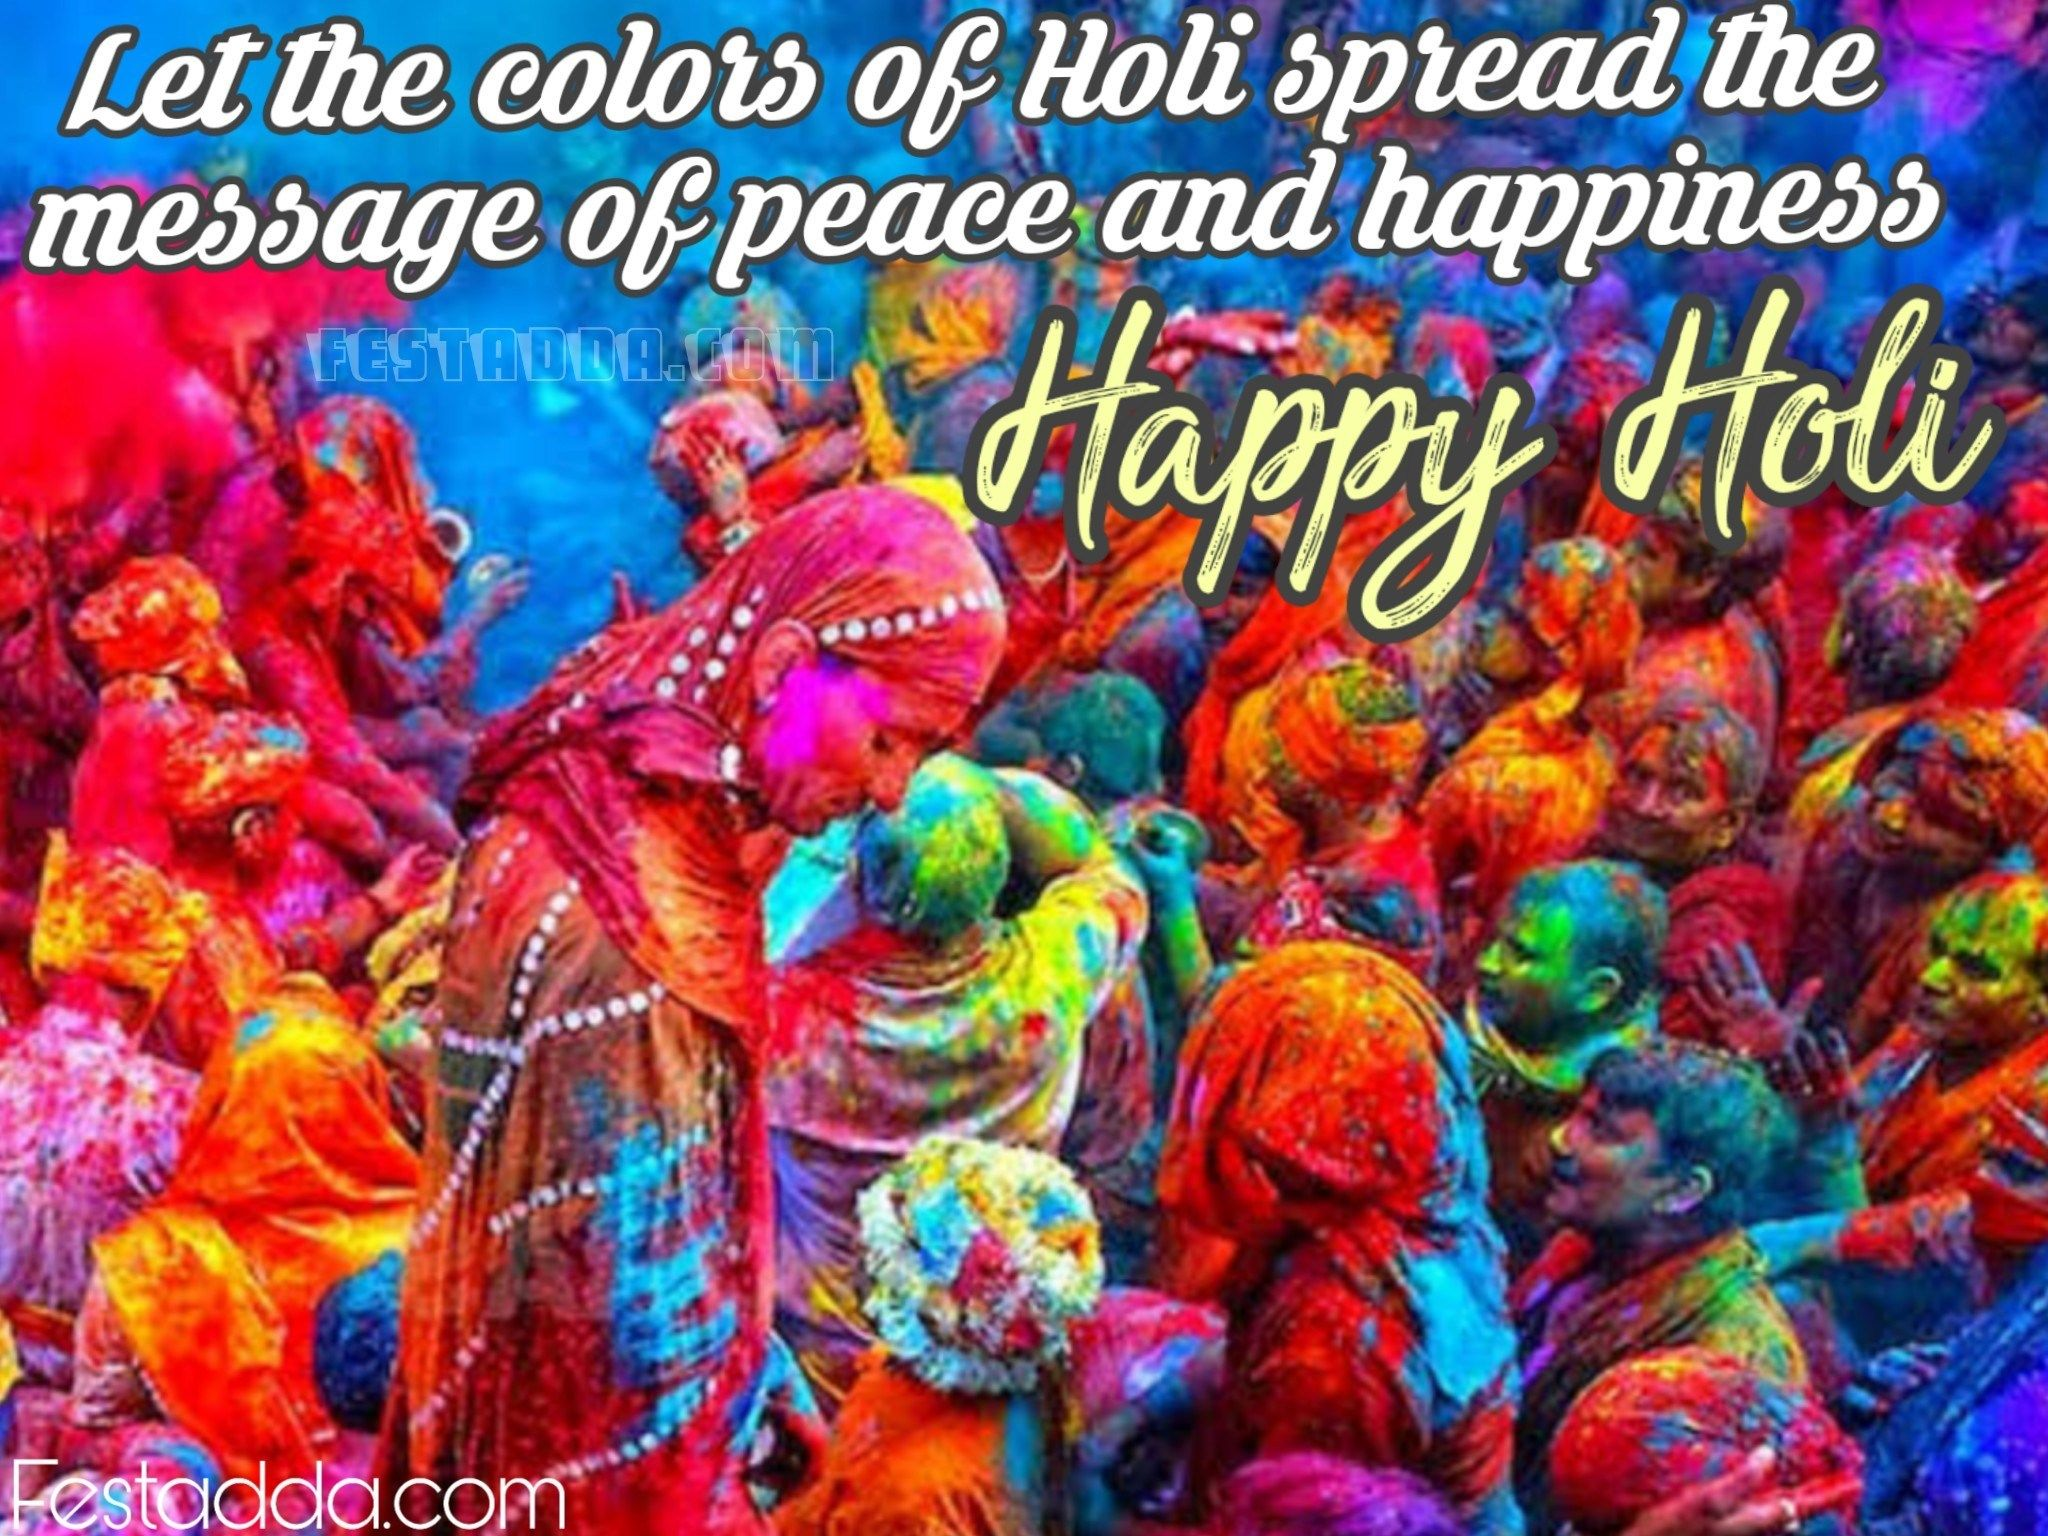 Happy Holi Quotes Funny Inspirational Holi Quotes For Friends In English Holi Sarcastic Quotes For Hindi English Happy Holi Quotes Happy Holi Sarcastic Quotes